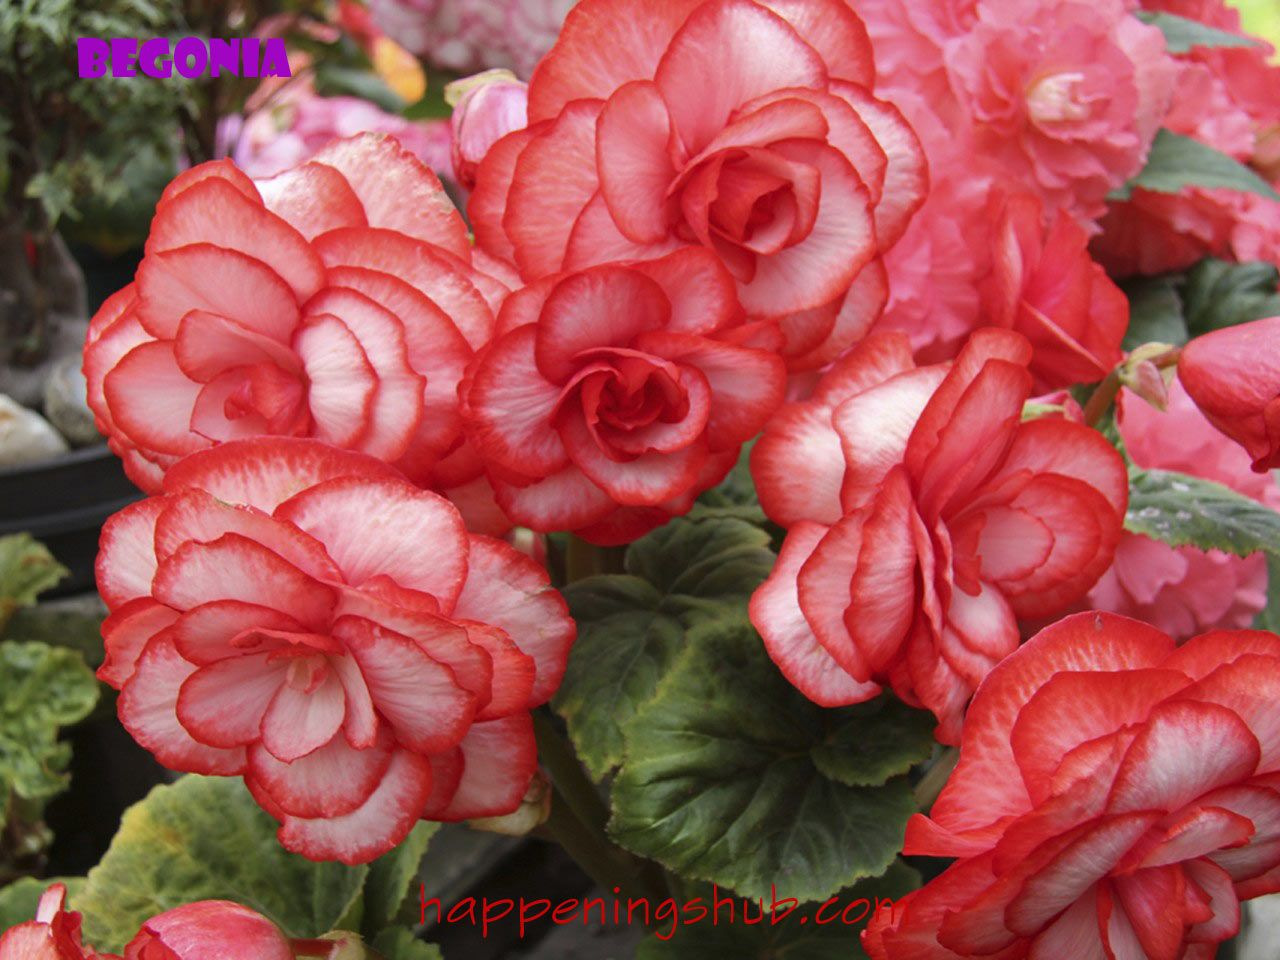 Wallpaper Begonia Flowers R Annual Plants Uses For White Vinegar Flowers